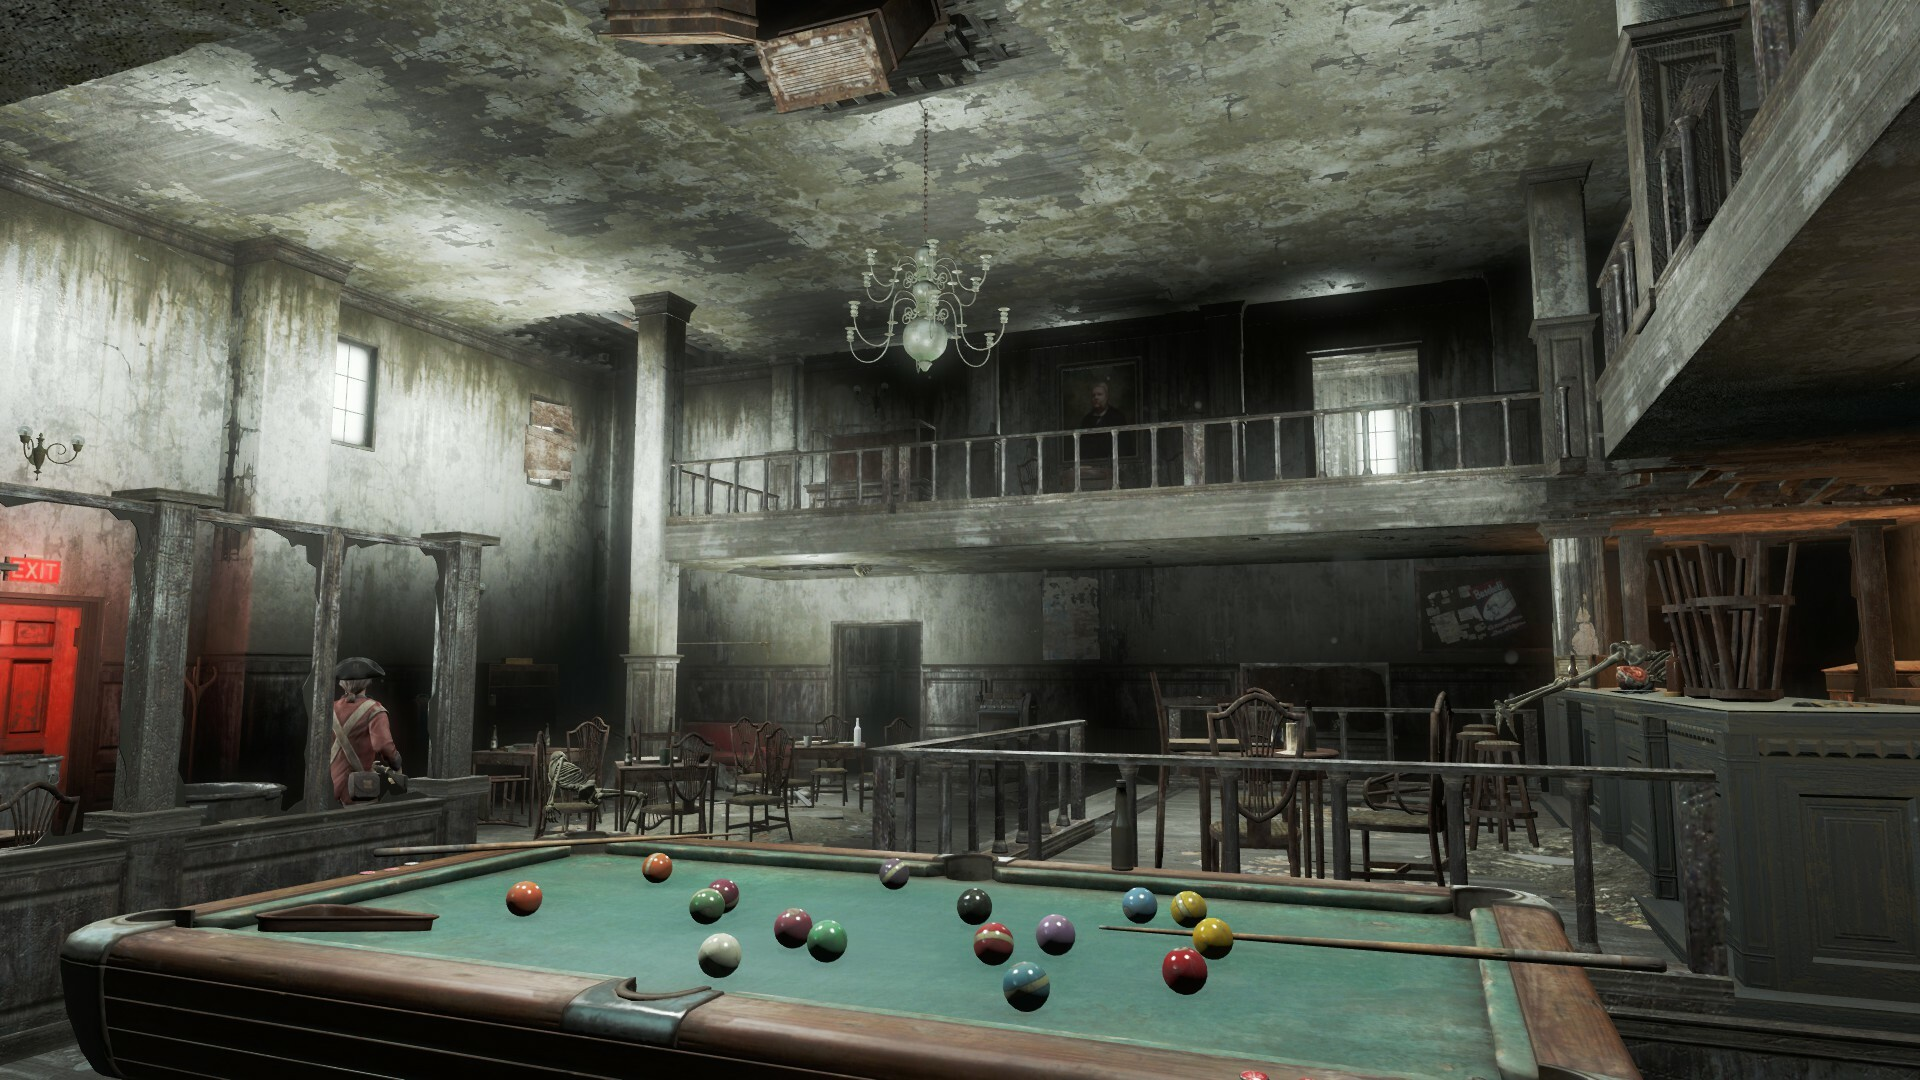 The pub makes use of verticality which helps make the level look visually interesting and also give the player more areas to explore.